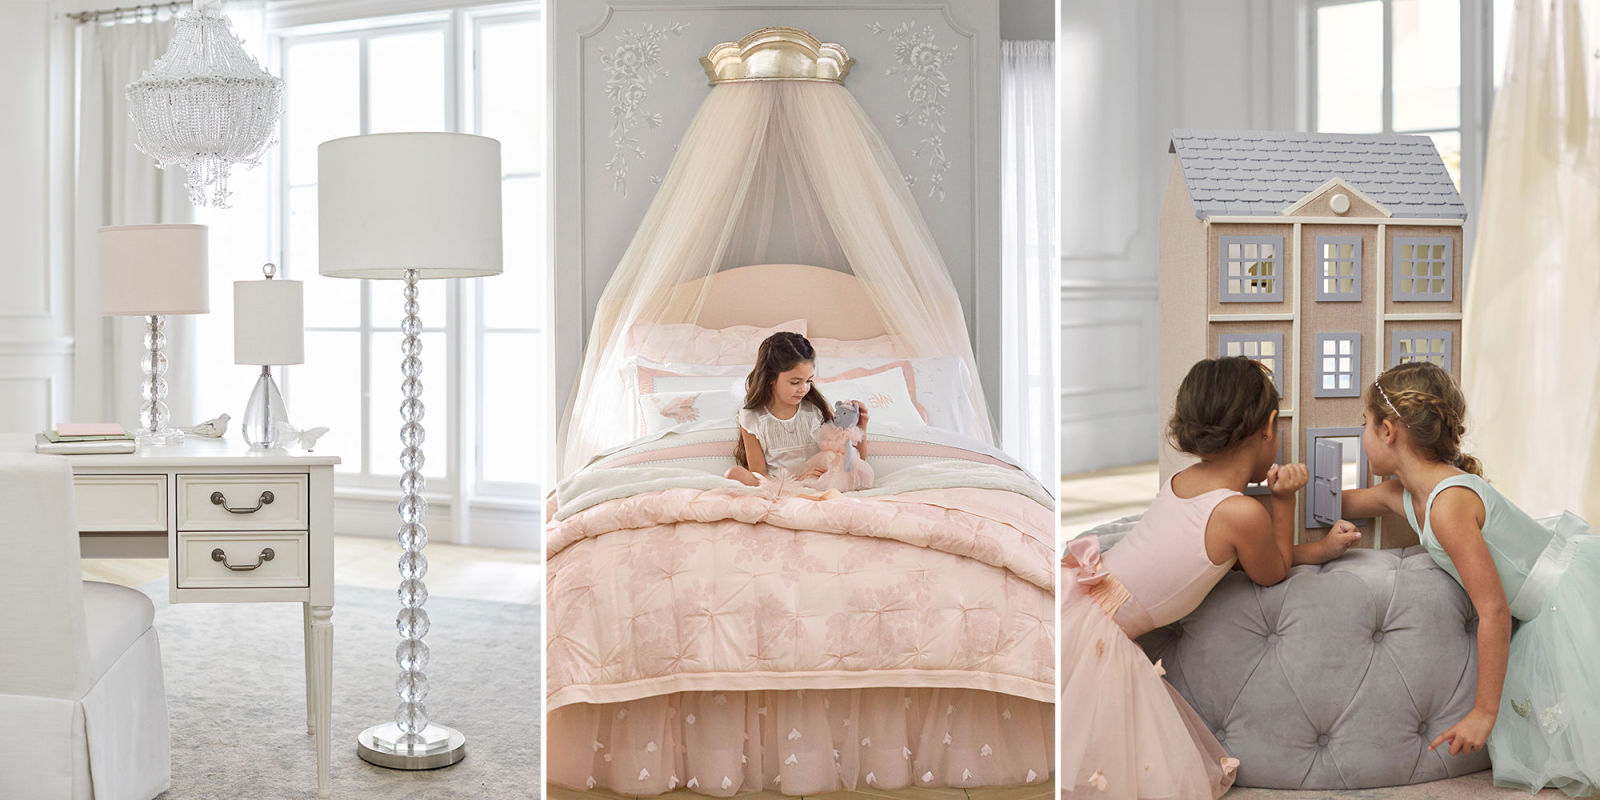 Living Room Pottery Barn Baby Room 16 best items from the monique lhuillier for pottery barn kids collection 2016